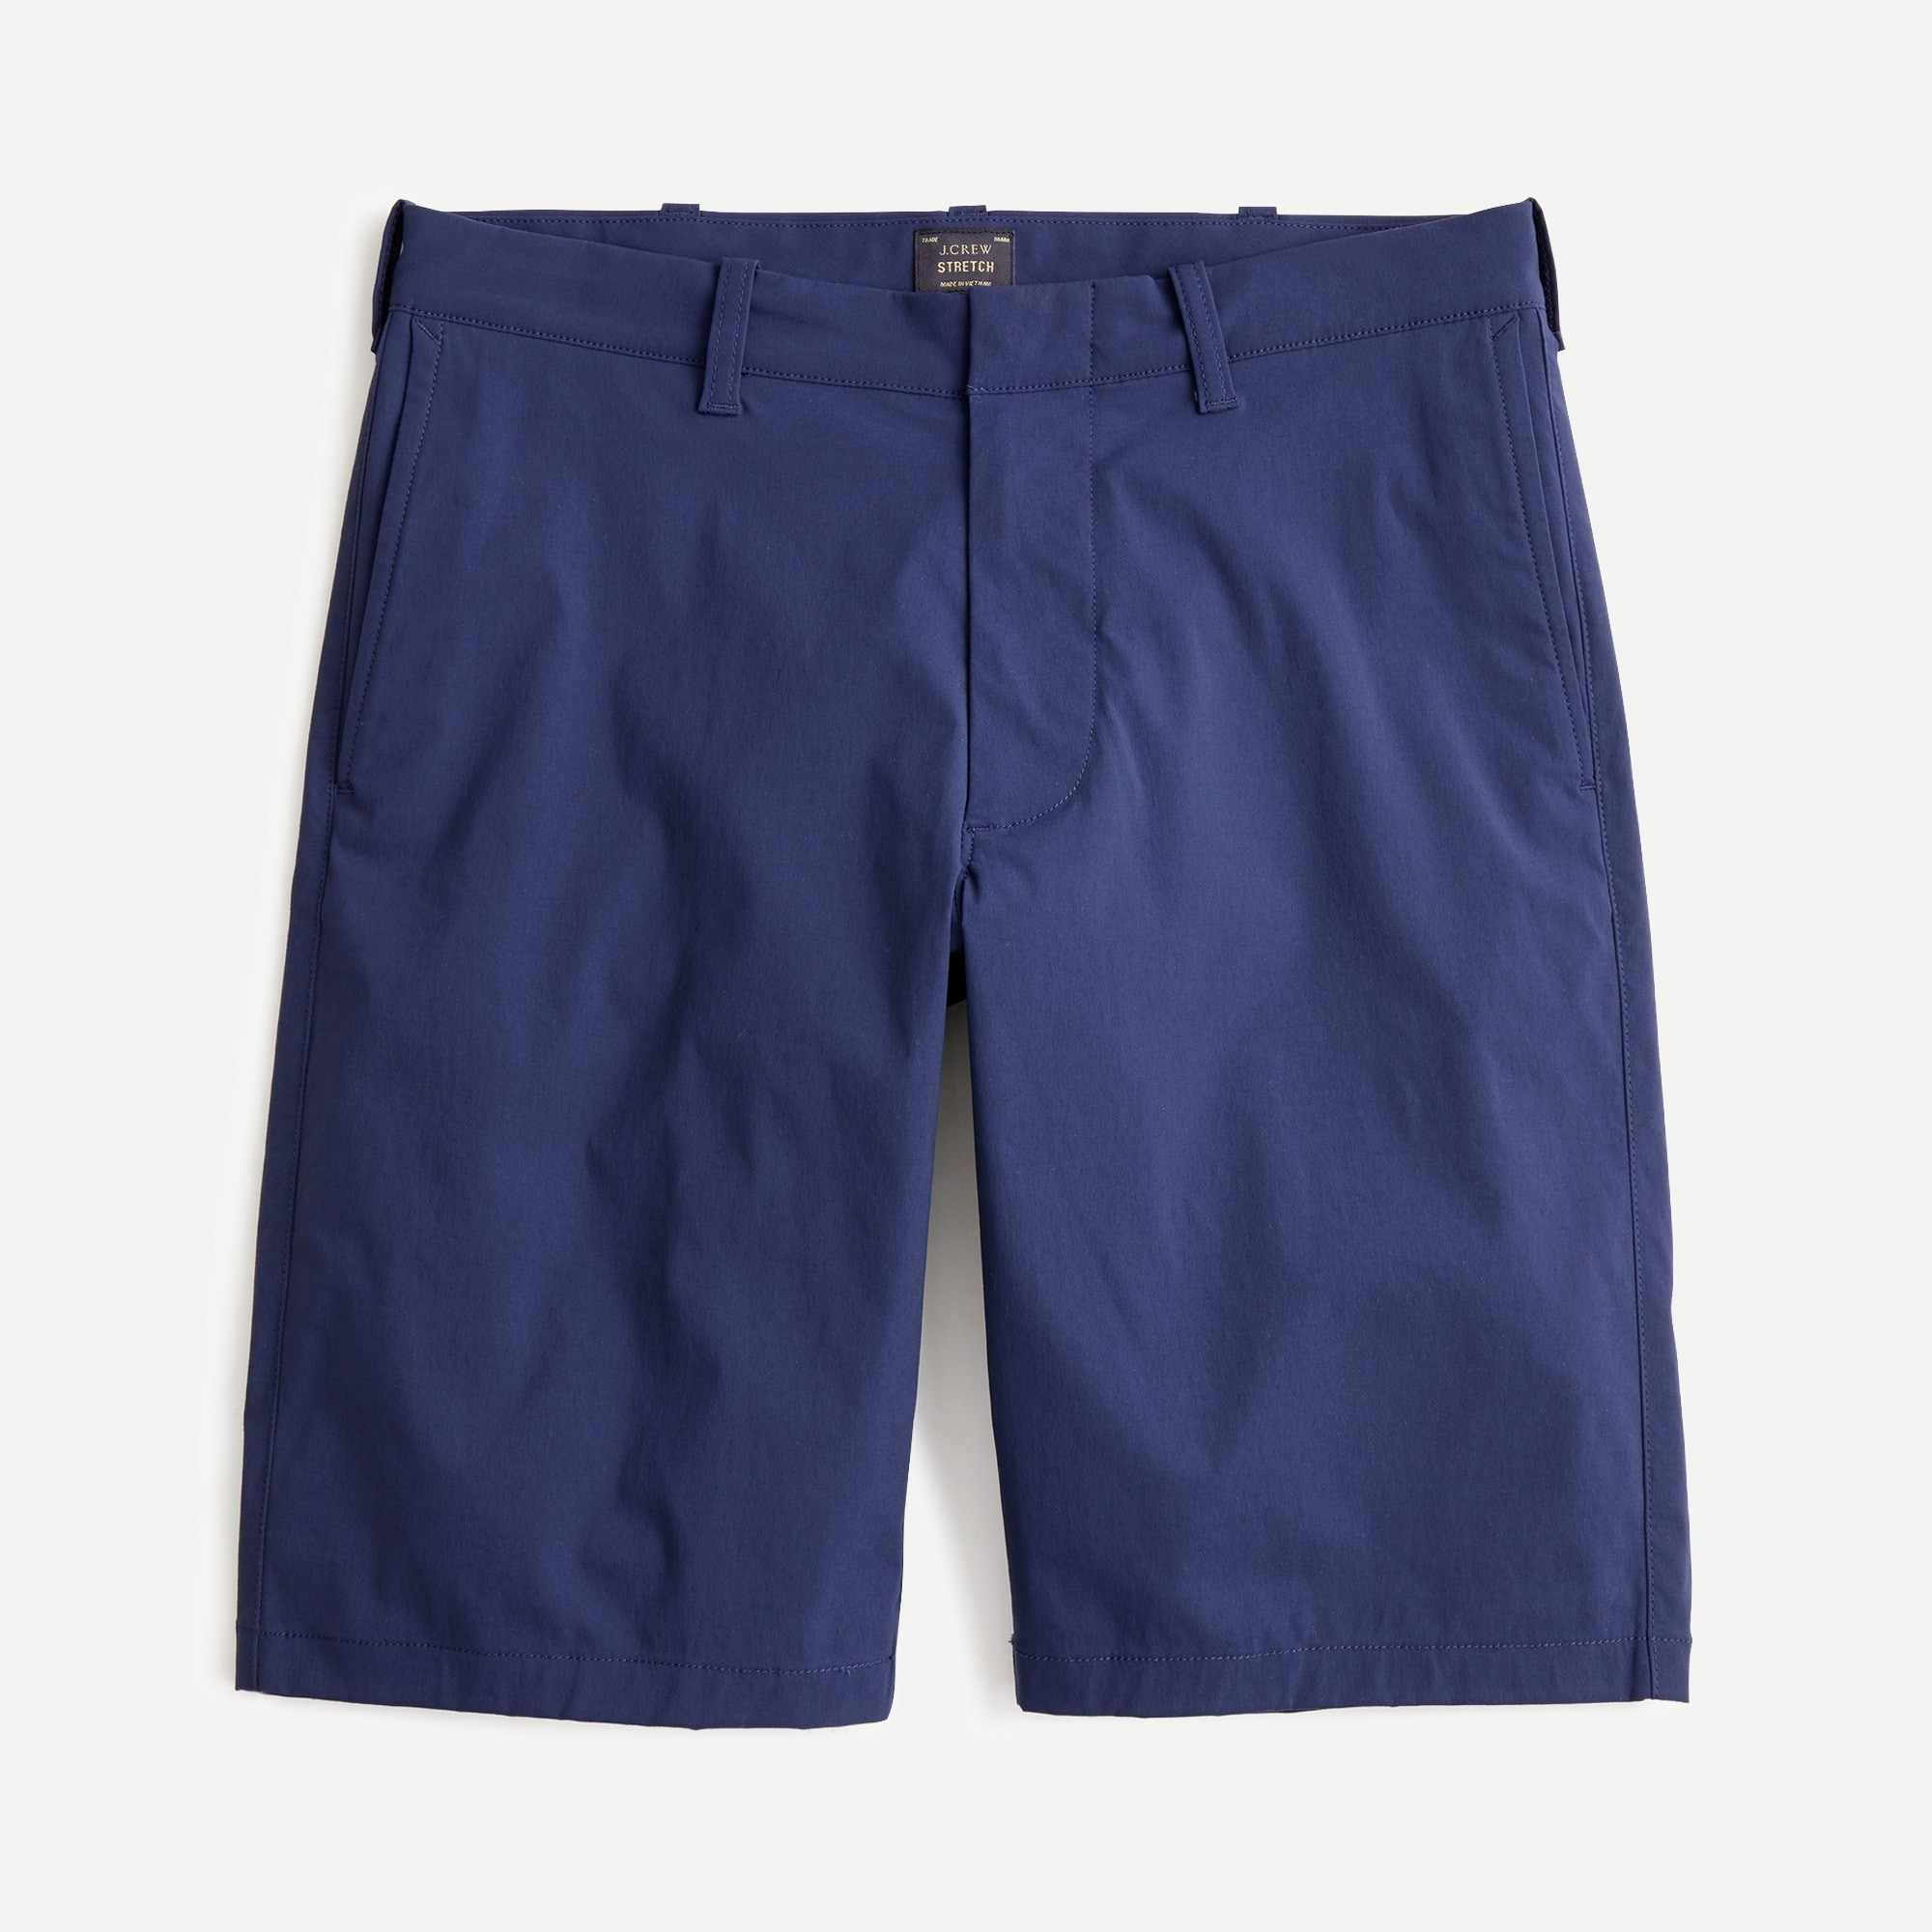 men's 10.5 tech short - men's shorts